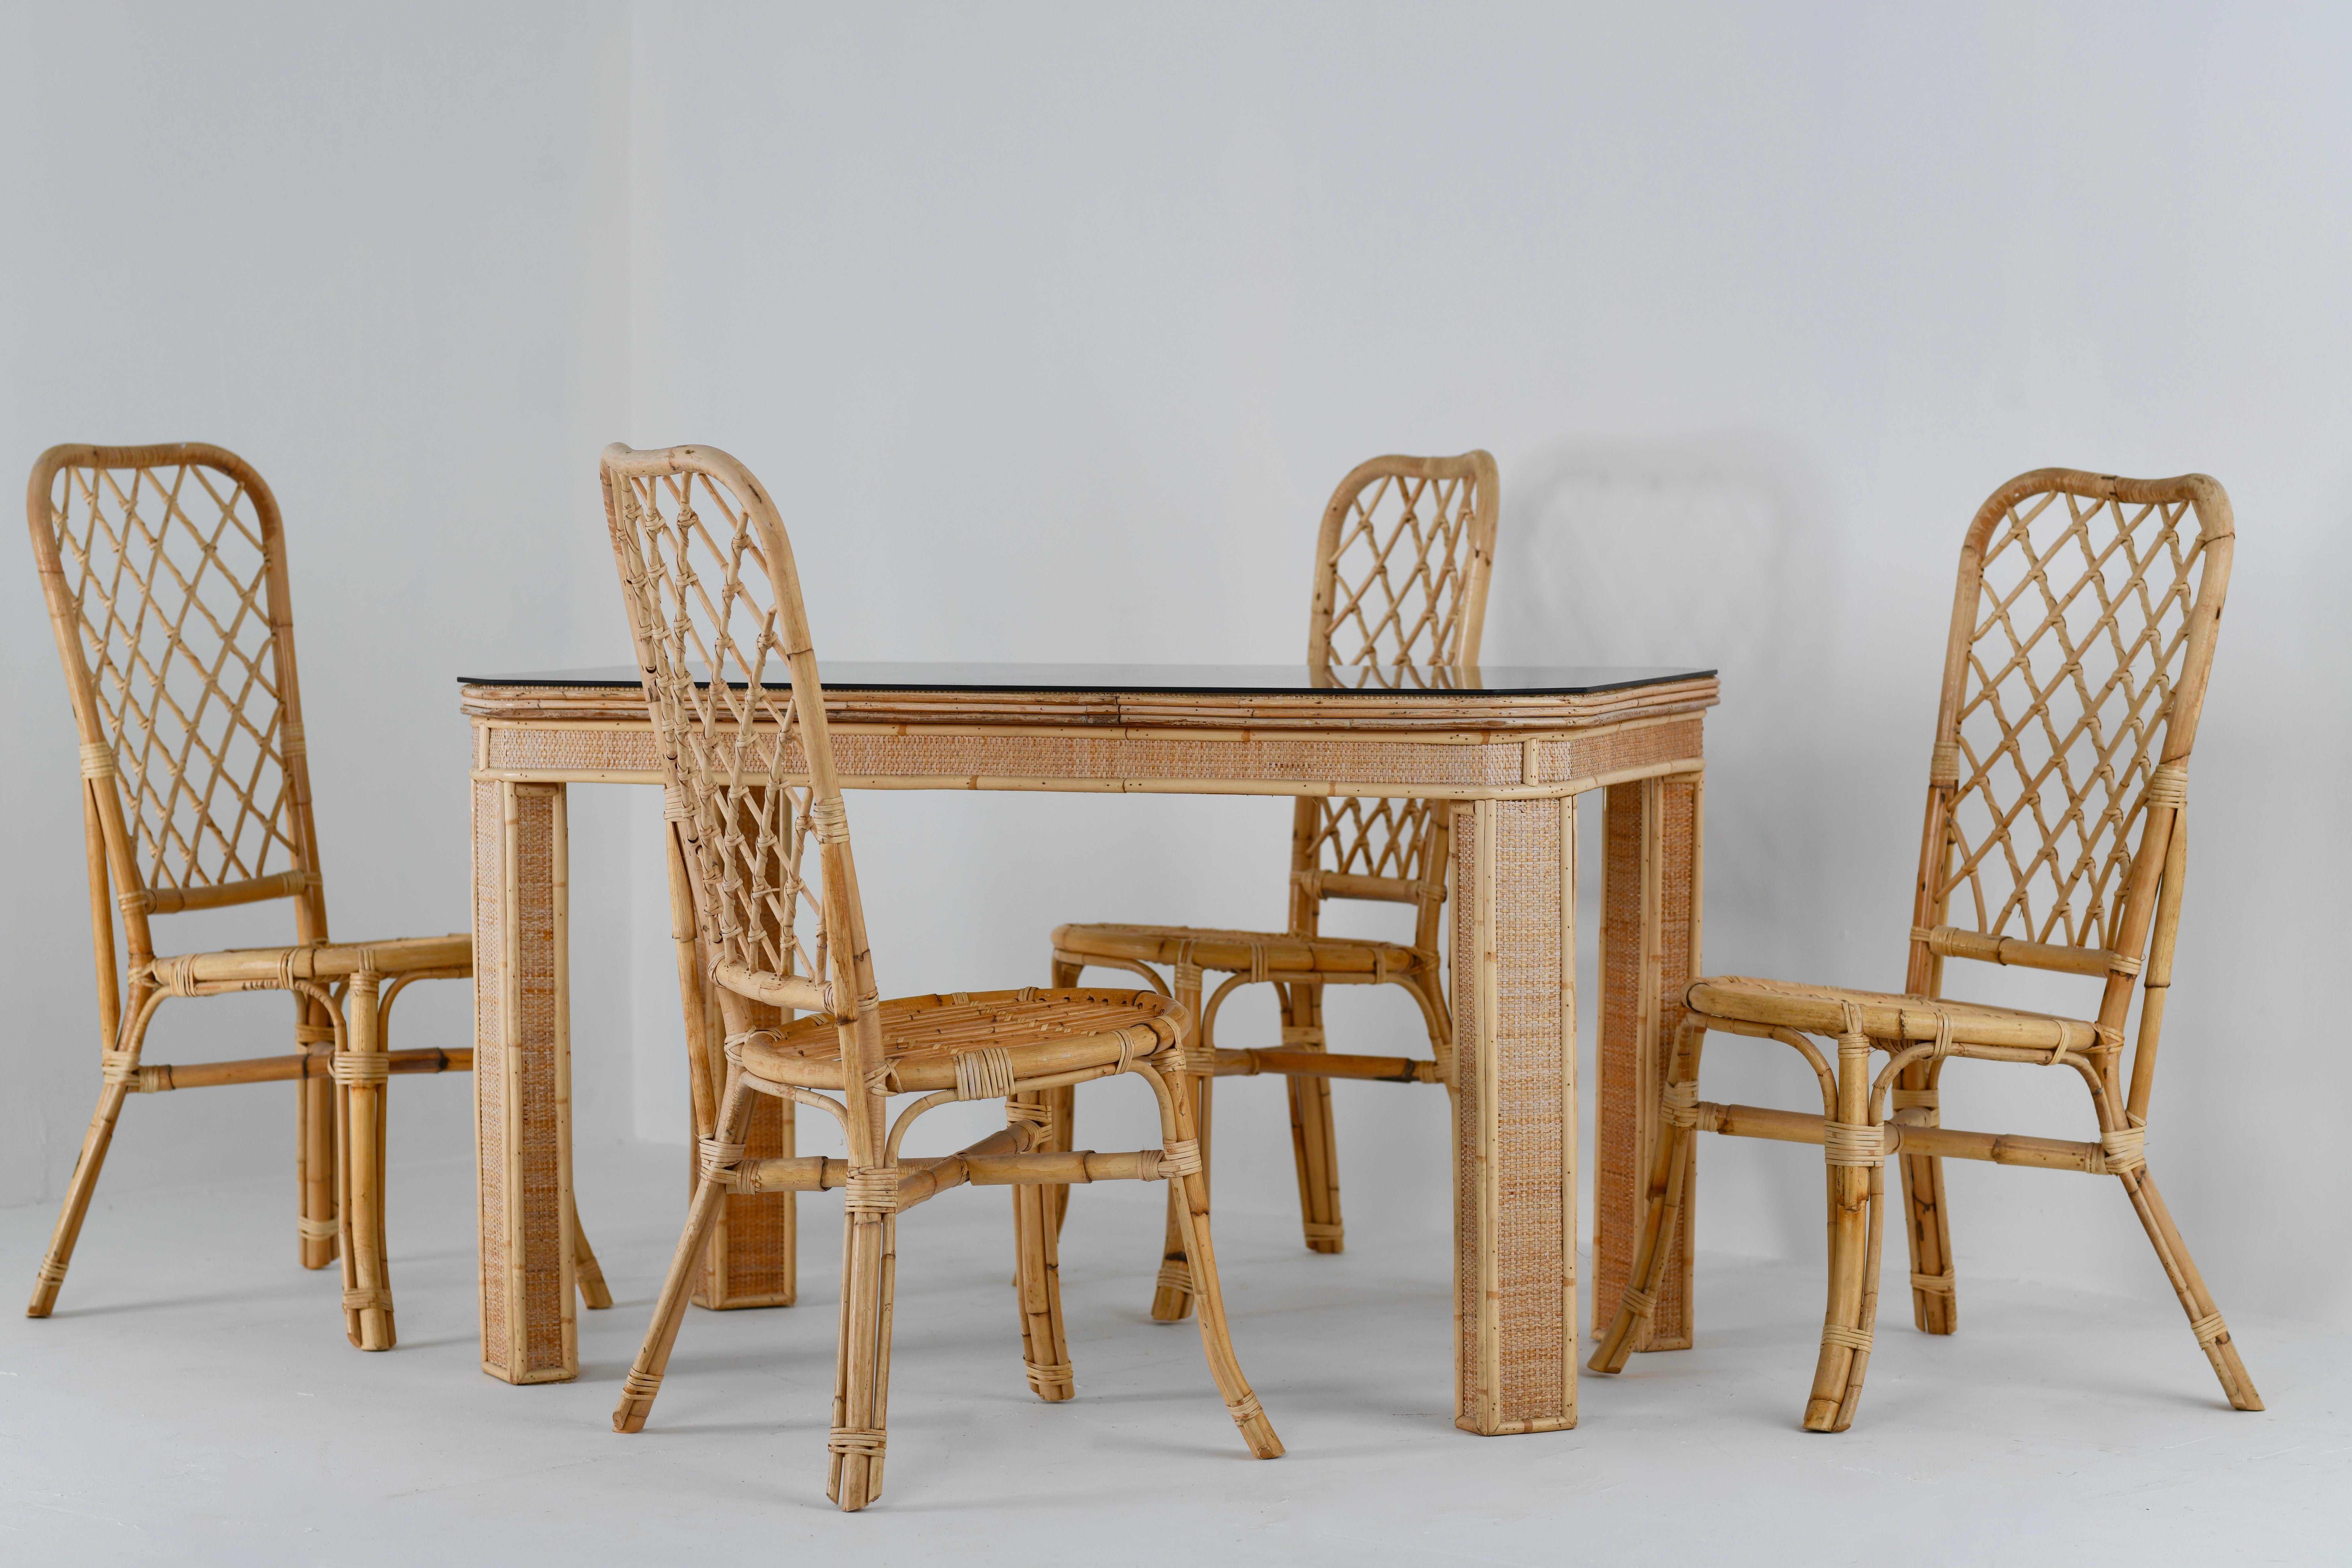 Split Cane Bamboo Table And Chair Set, Italian, 1960s